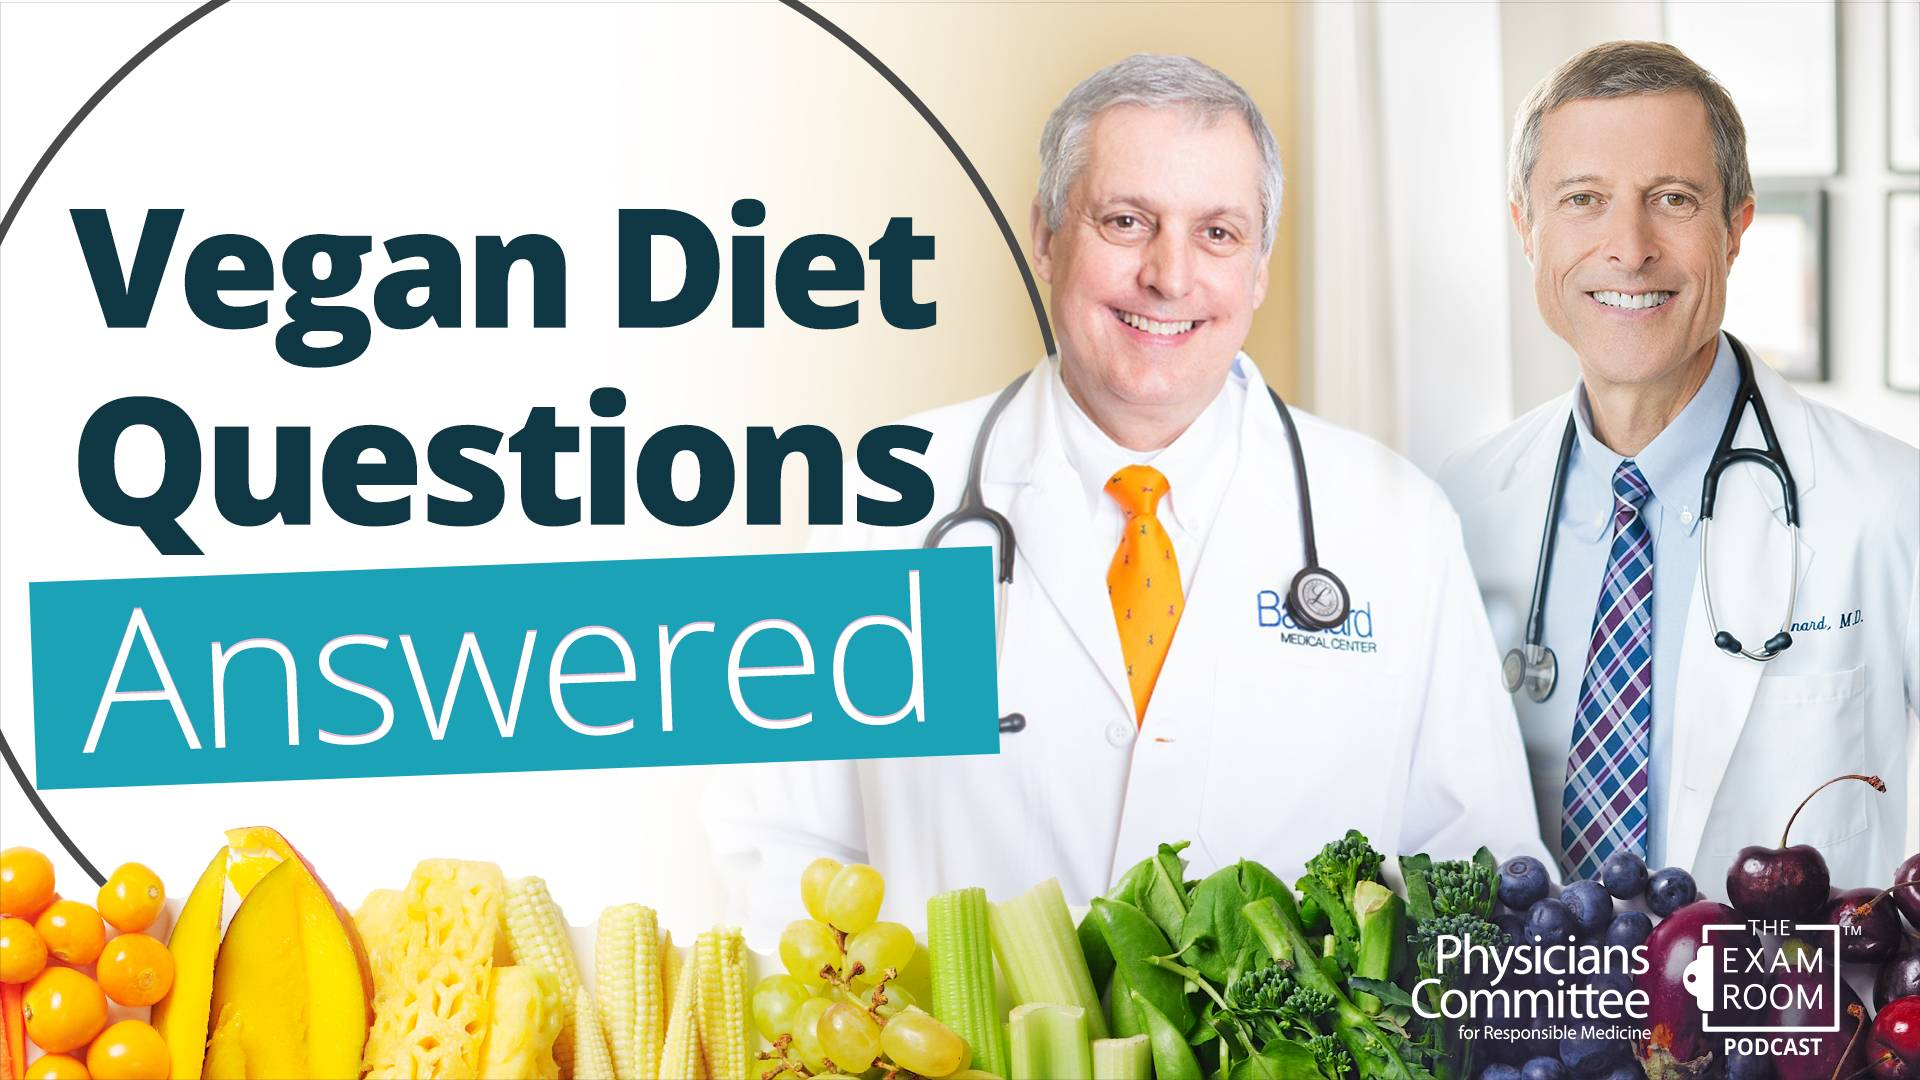 Vegan Diet Questions Answered